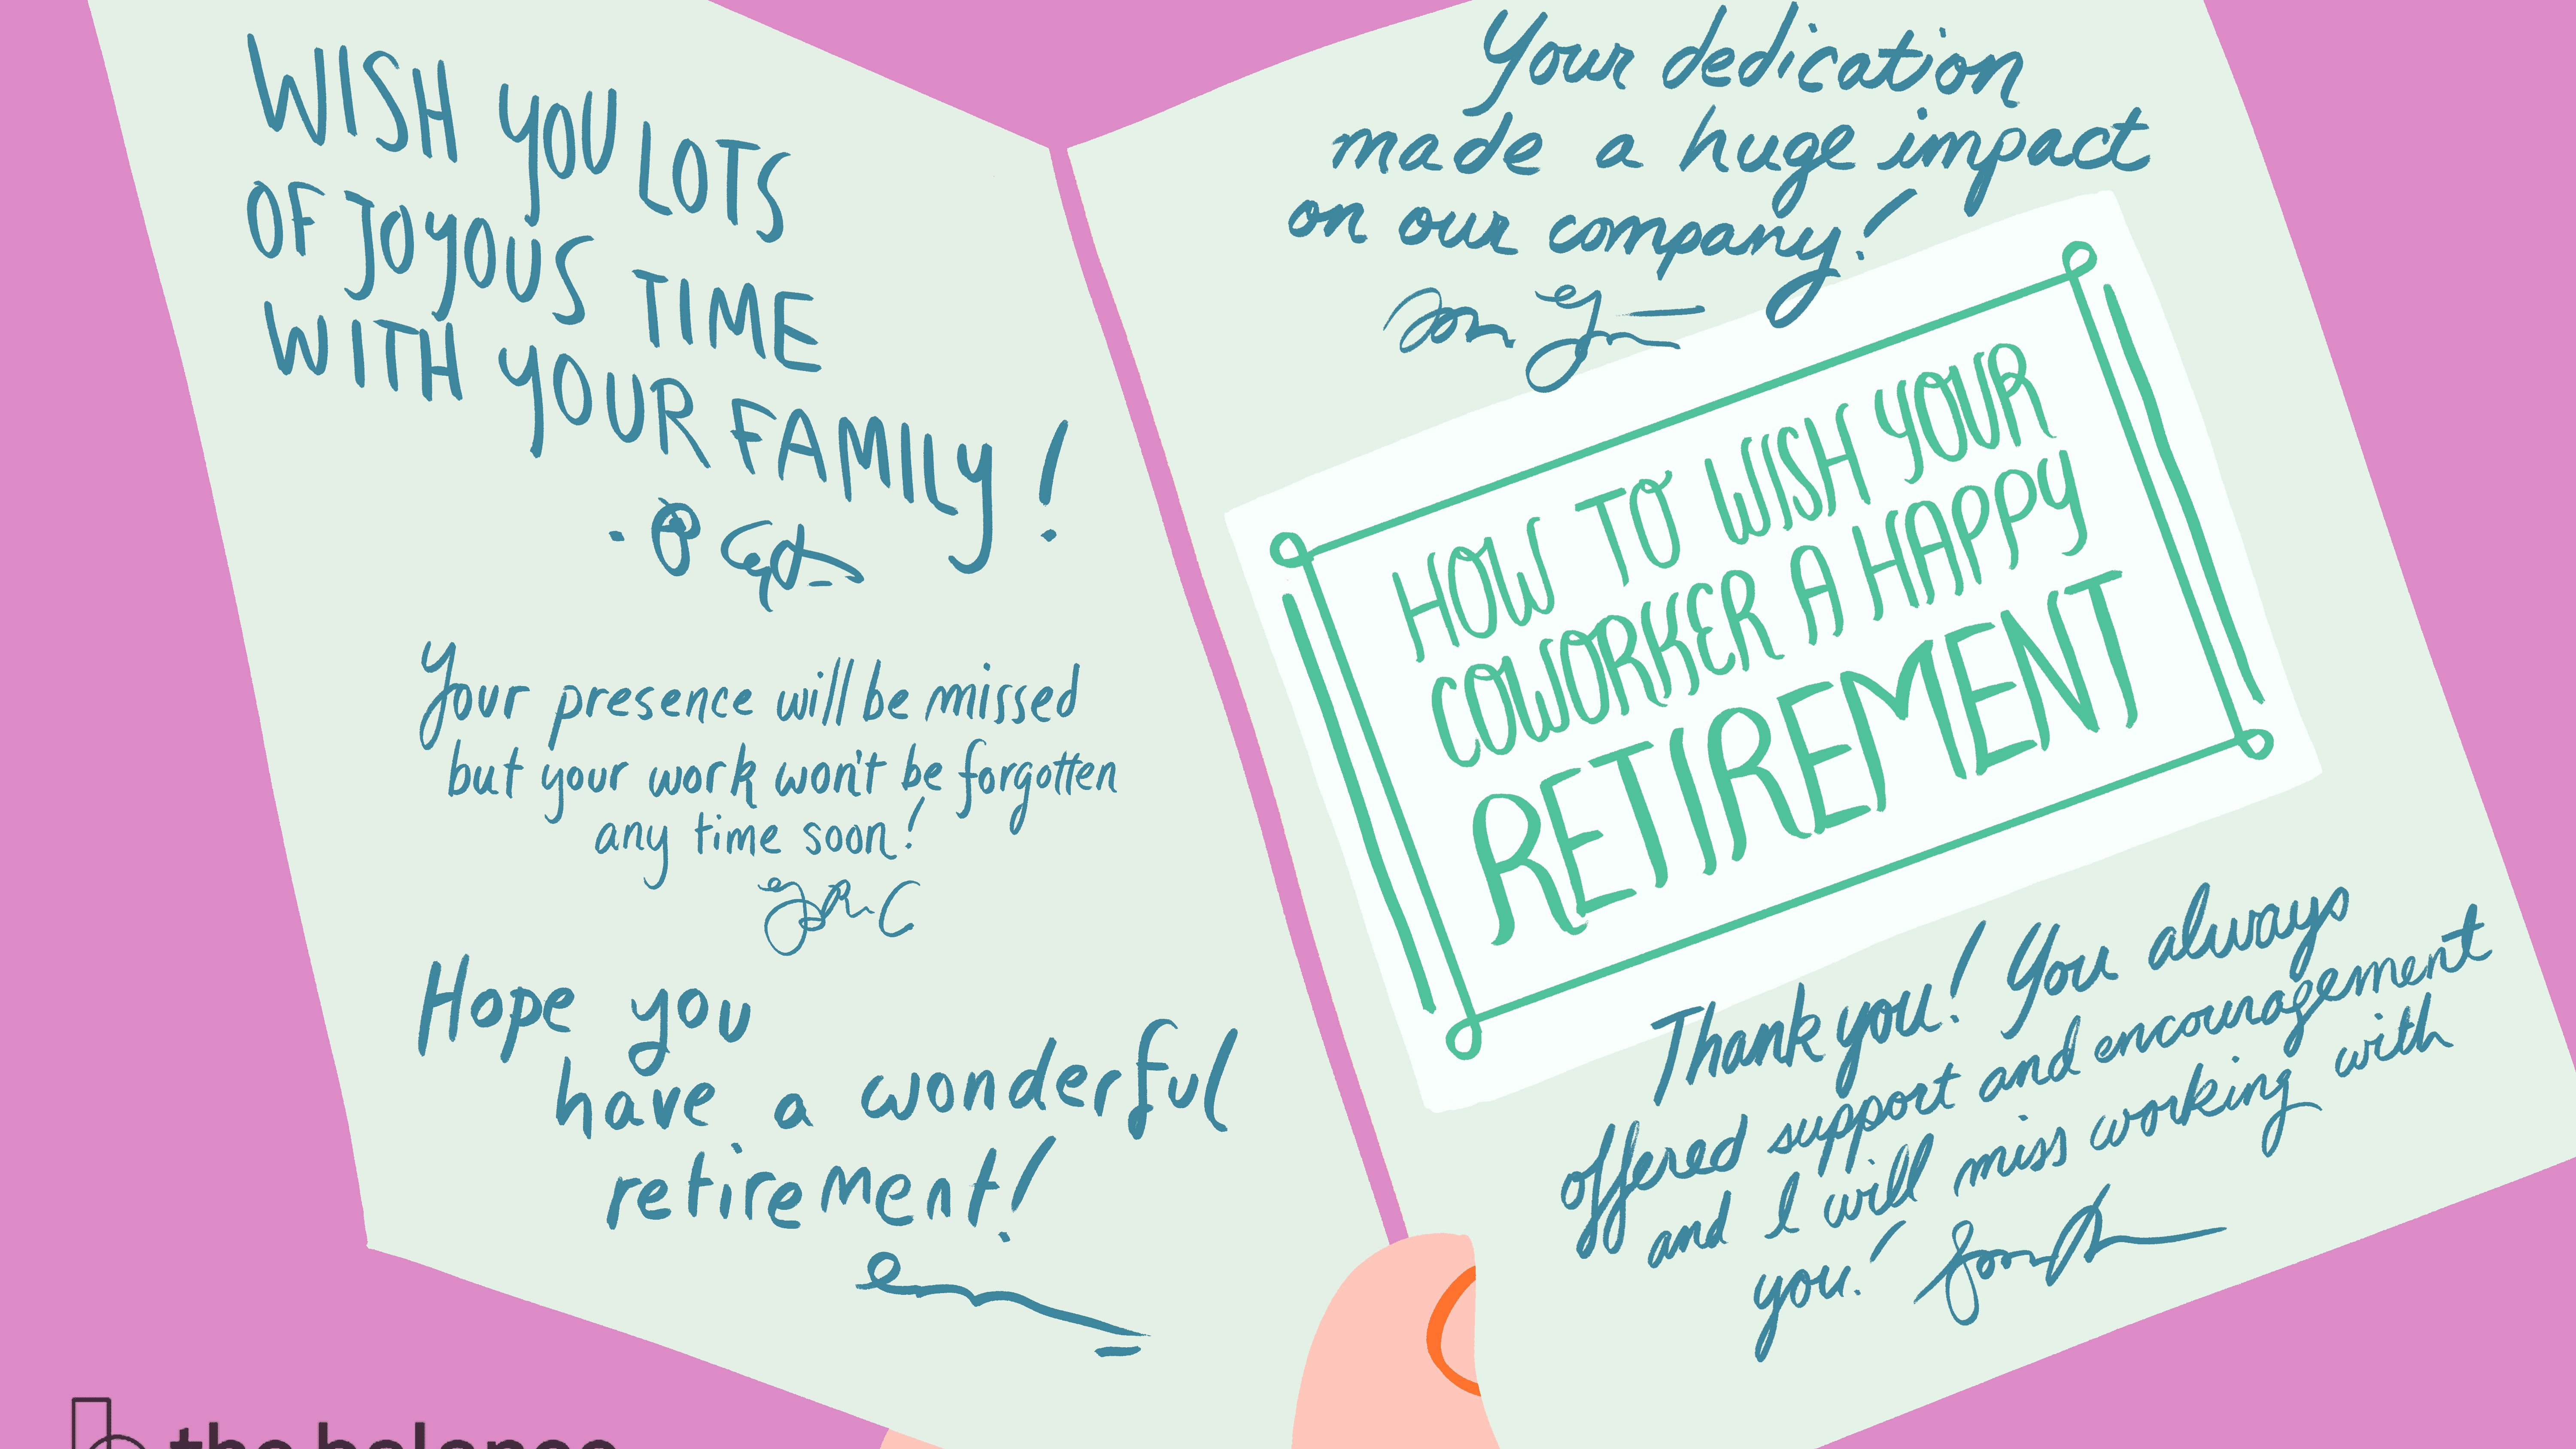 How To Best Wish Your Coworker A Happy Retirement With Sorry You Re Leaving Card Template Cumed Org Farewell Cards Farewell Message Thank You Card Wording